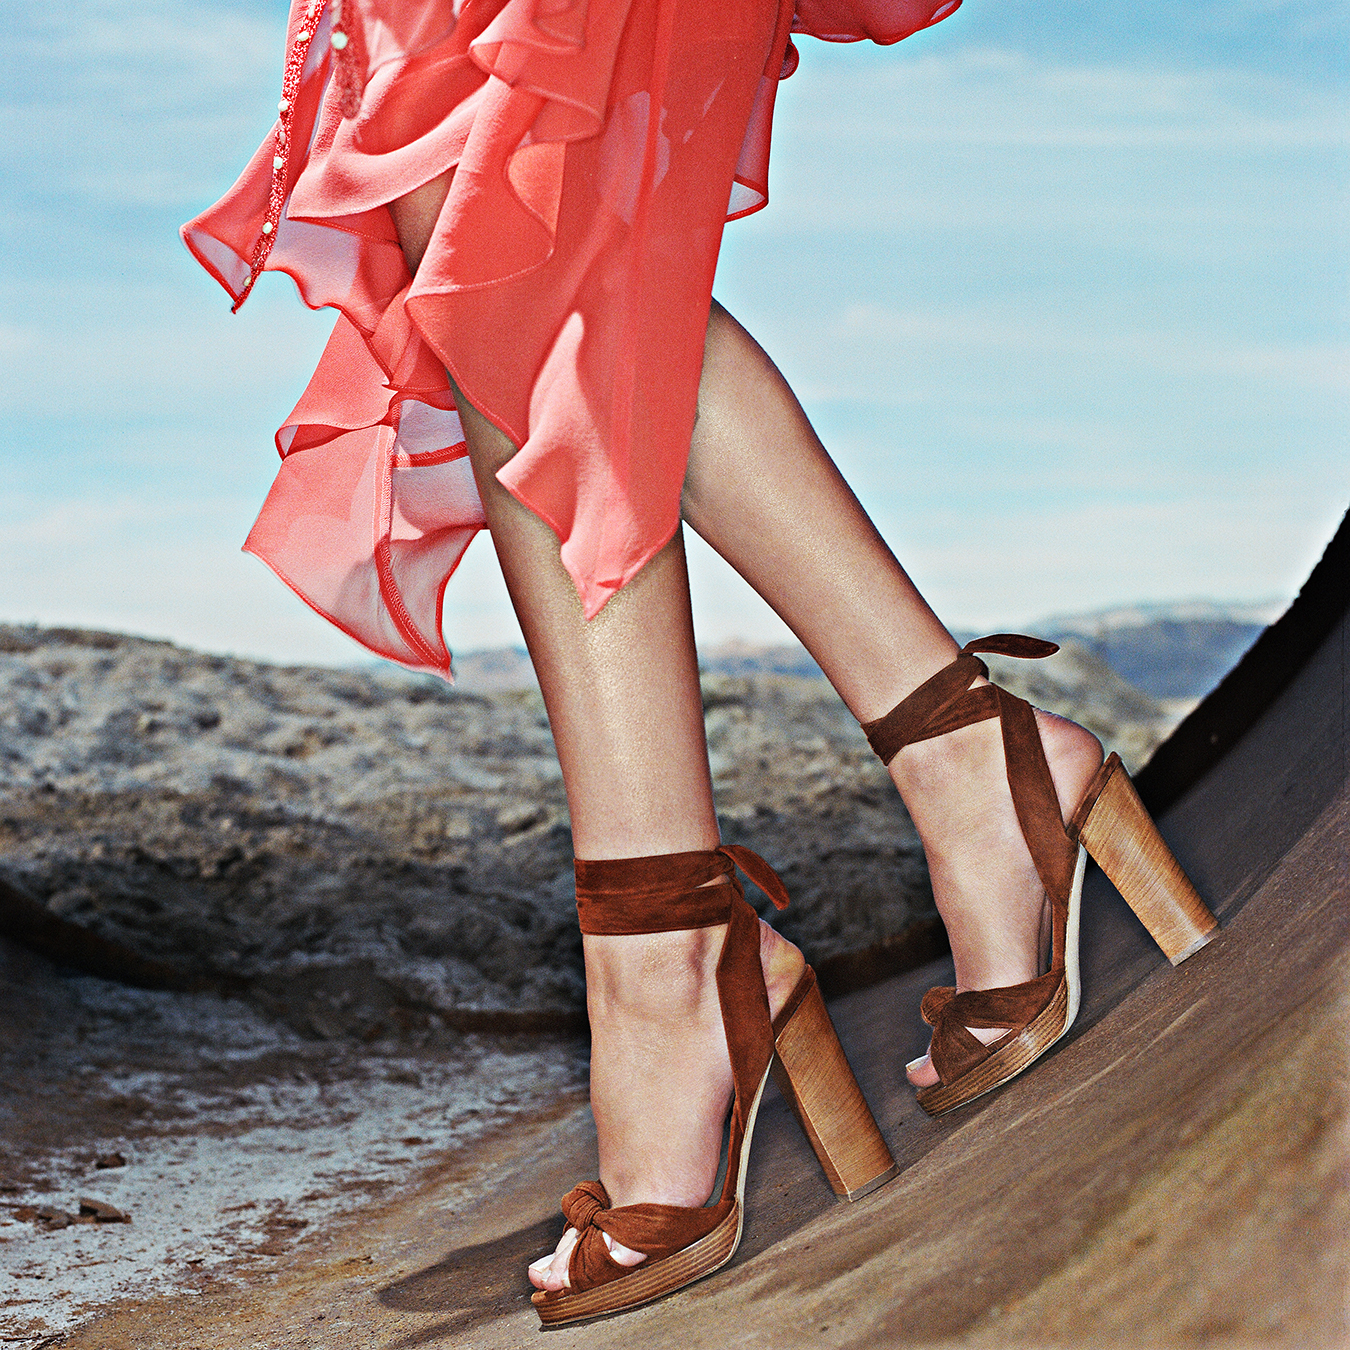 151-NEIMAN_MARCUS_SHOES_RED_DRESS_DESERT_HP_c1452-copy